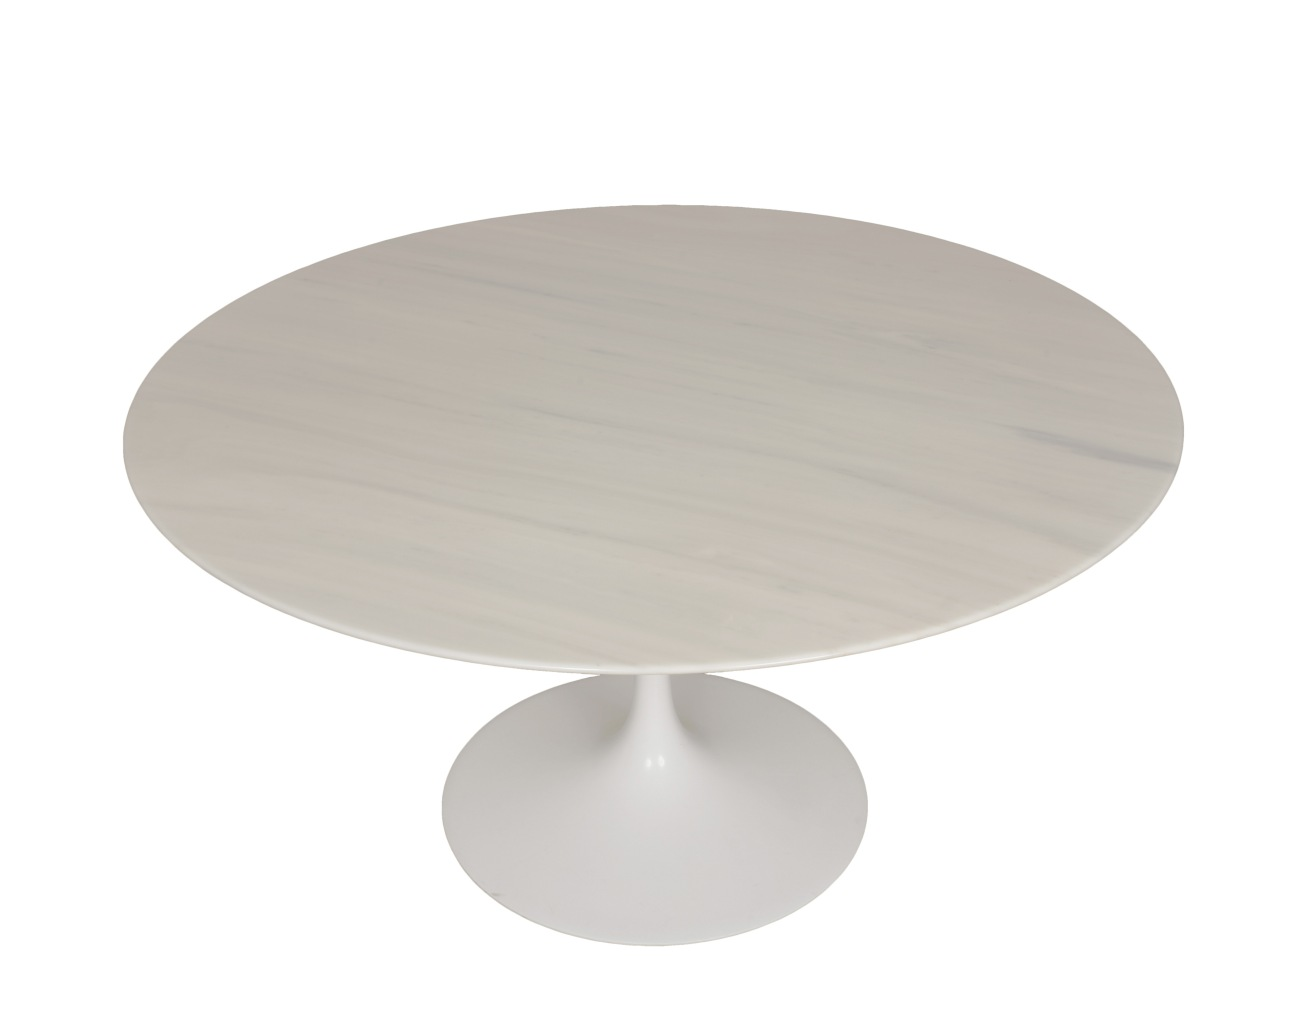 Tavolo Tulip Knoll Marmo : Eero saarinen tulip carrara marble table round knoll international